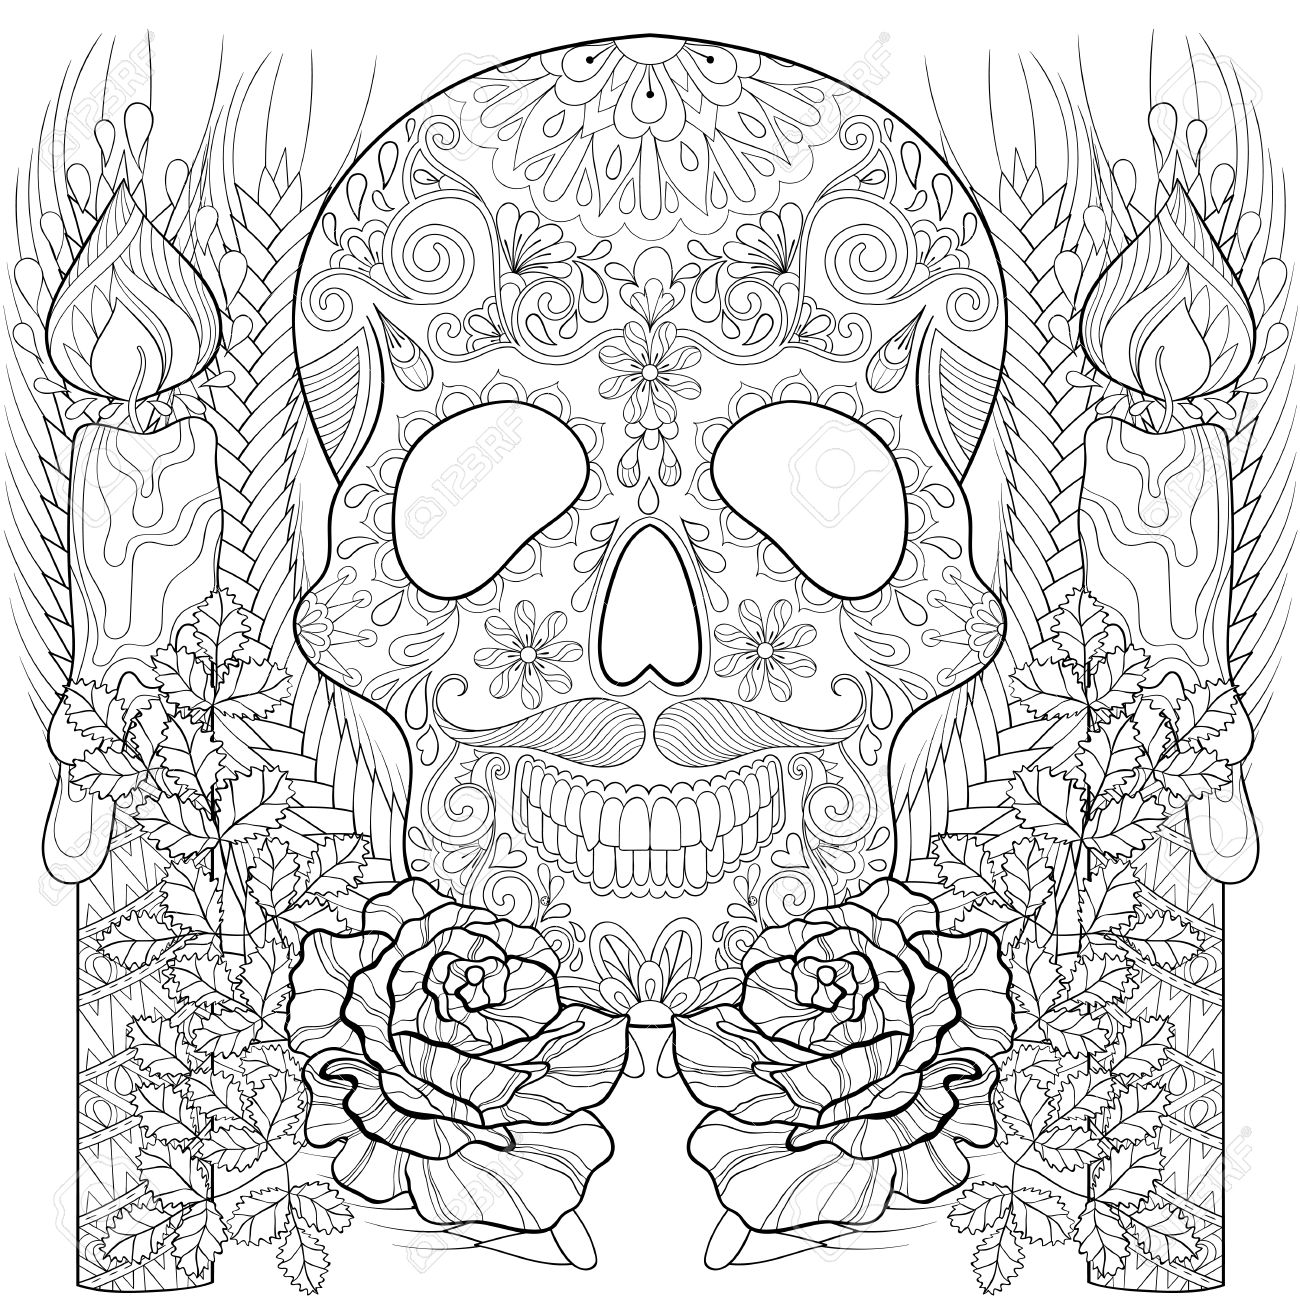 stylized skull with candles roses ears for halloween freehand